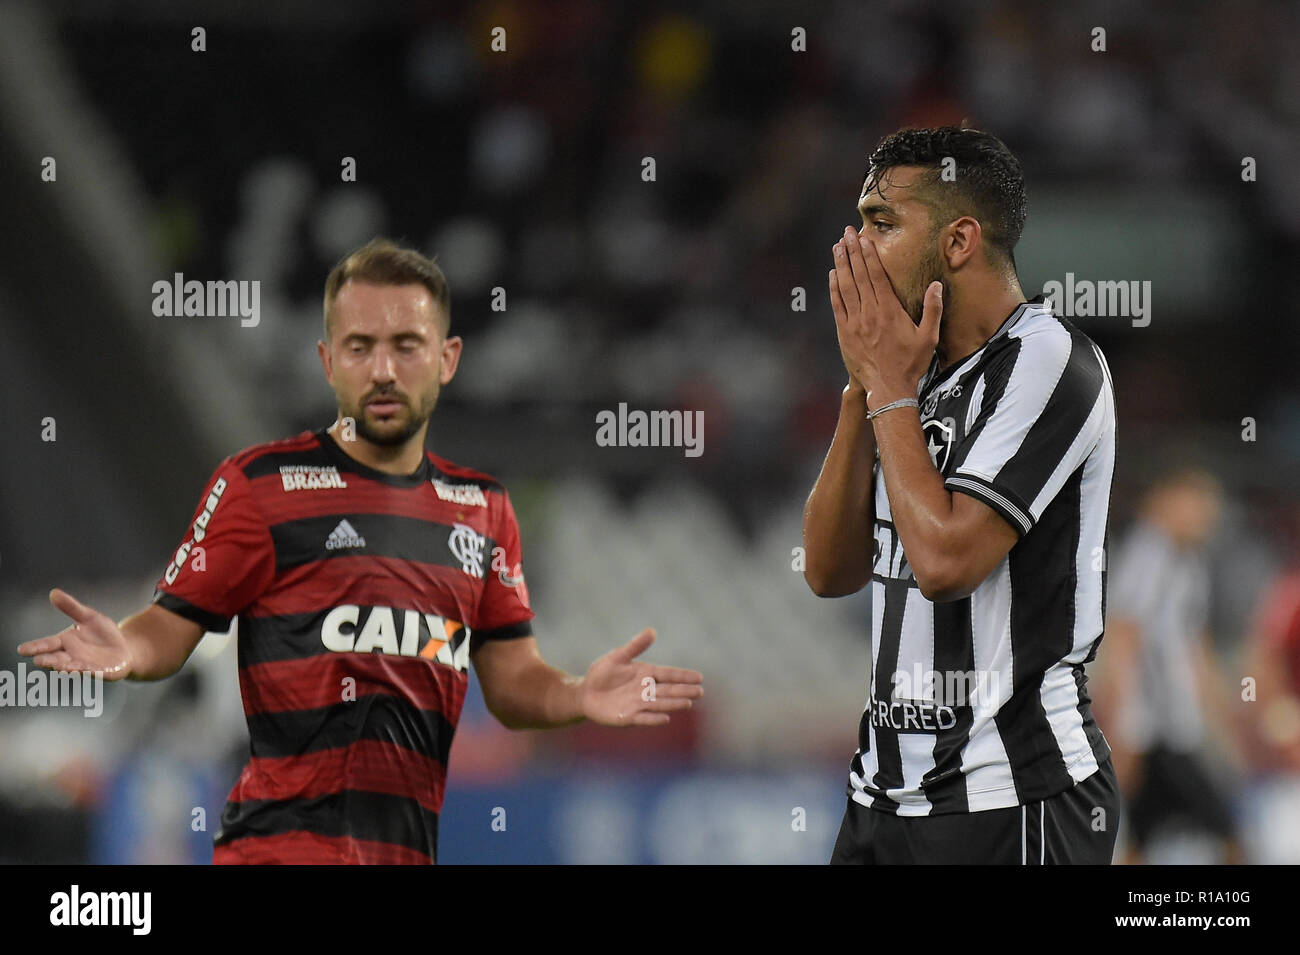 RJ - Rio de Janeiro - 10/11/2018 - Brazilian A 2018, Botafogo x Flamengo -Brenner Botafogo player regrets missed chance during match against Flamengo at the Engenhao stadium for the Brazilian championship A 2018. Photo: Thiago Ribeiro / AGIF - Stock Image